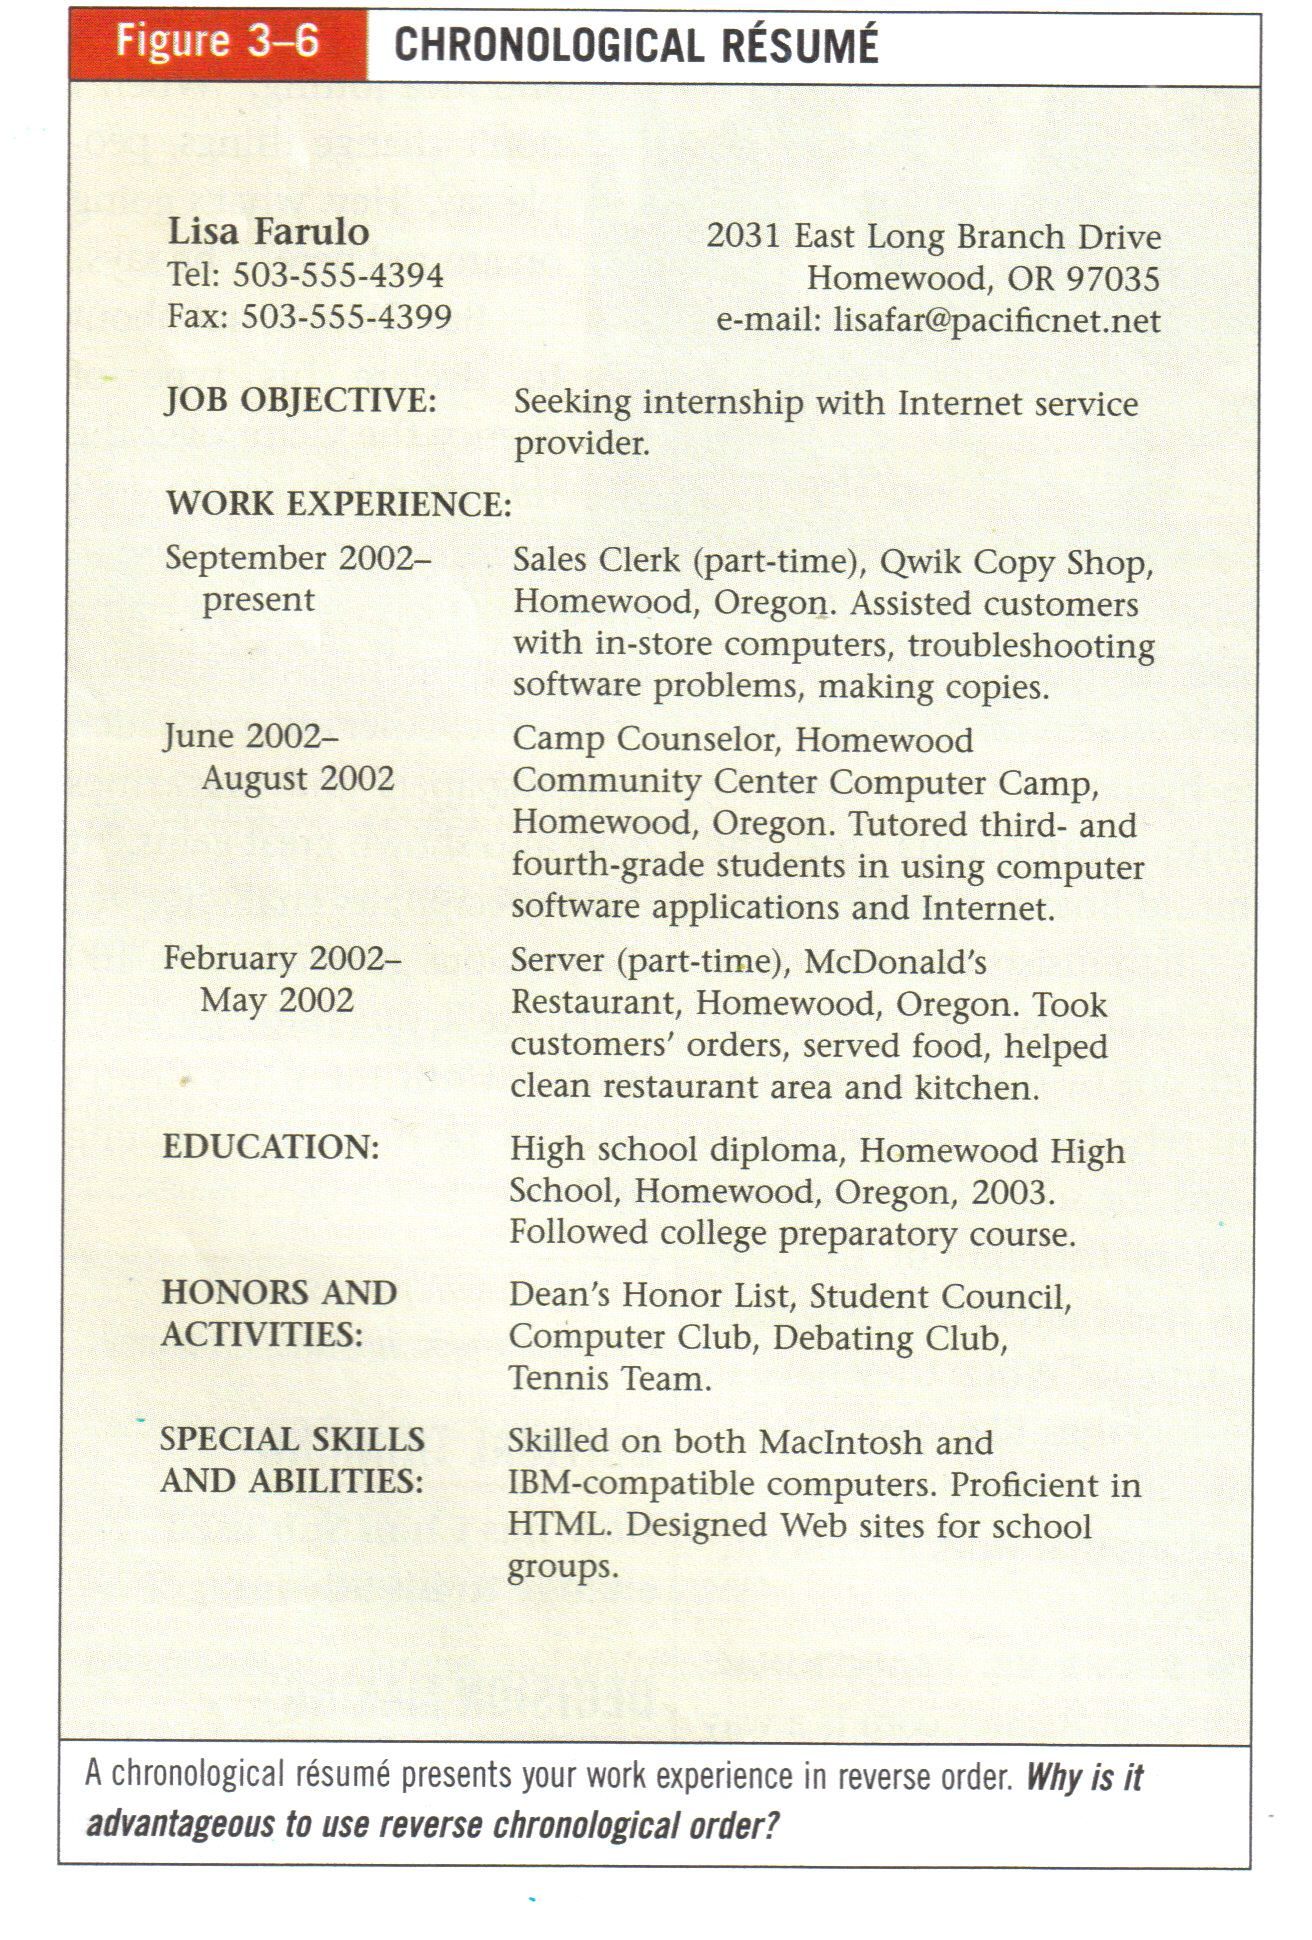 Sample Chronological Resume Sample Chronological Resume  Career Development Teaching Ideas